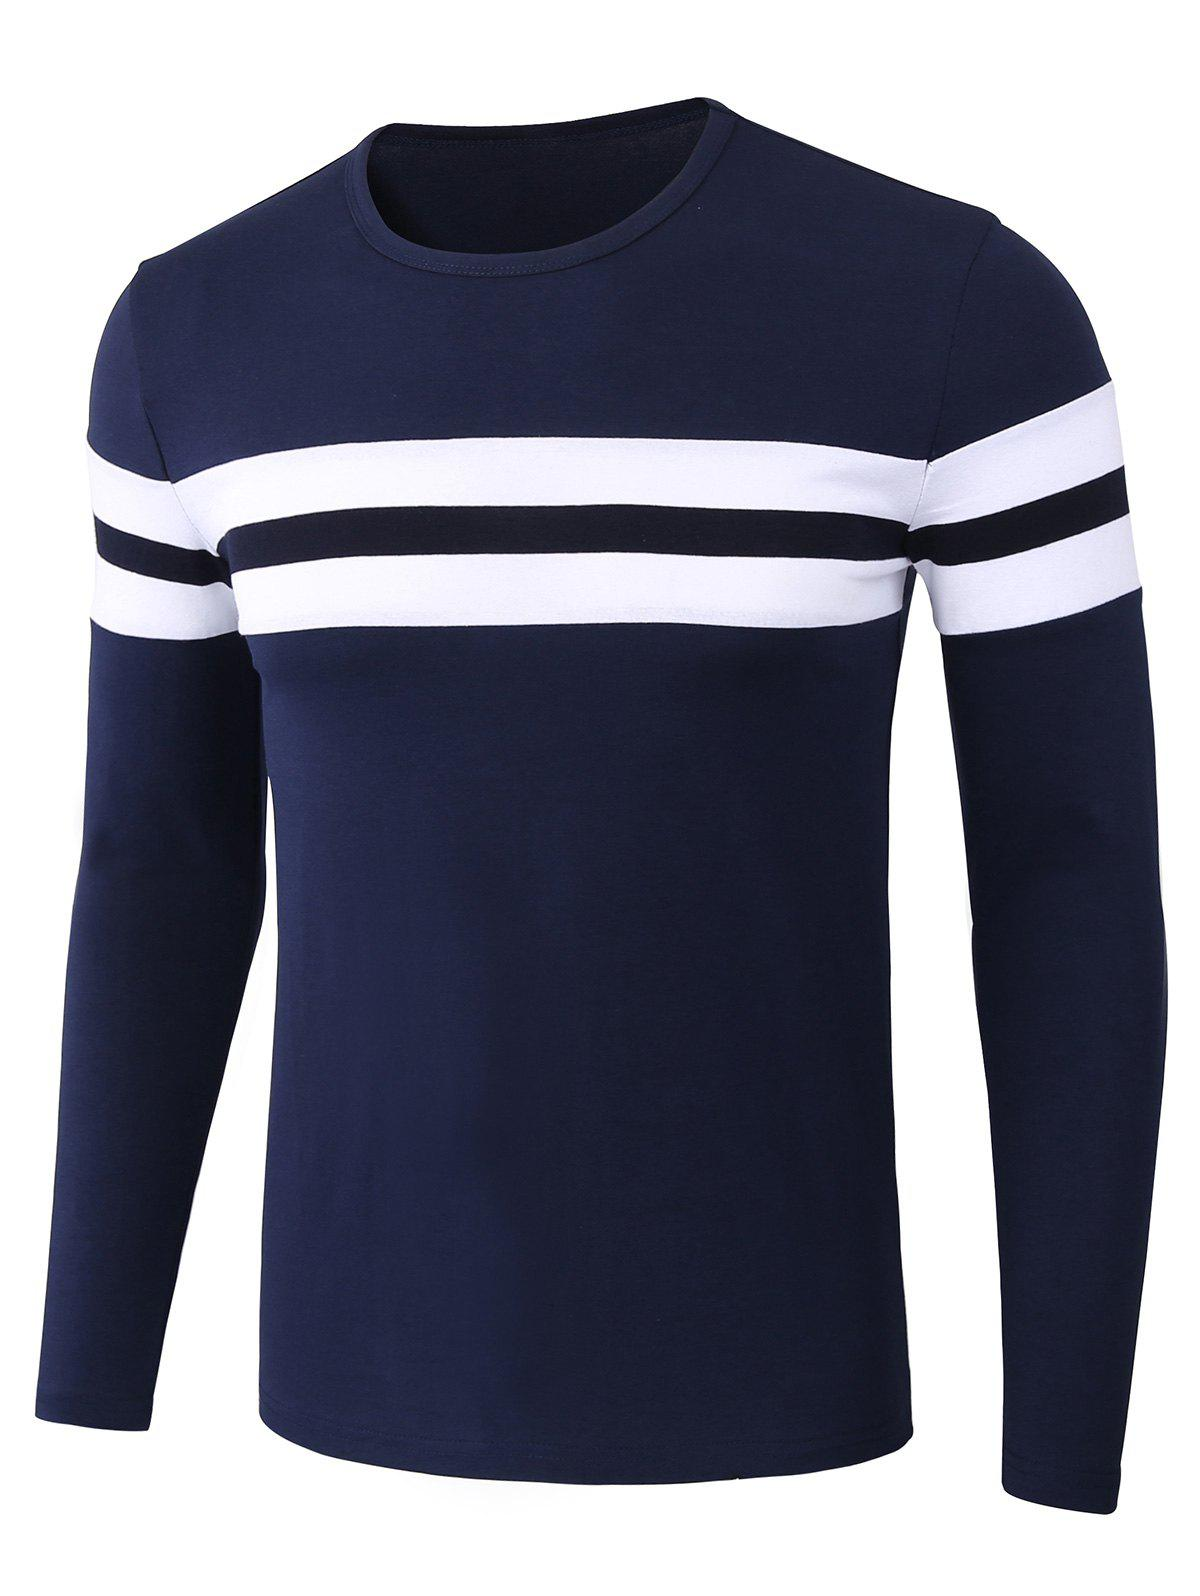 Stripe Trim Long Sleeve T-shirtMEN<br><br>Size: 3XL; Color: BLUE; Material: Cotton,Spandex; Sleeve Length: Full; Collar: Crew Neck; Style: Casual,Fashion; Pattern Type: Color Block,Striped; Season: Summer; Weight: 0.3450kg; Package Contents: 1 x T-shirt;